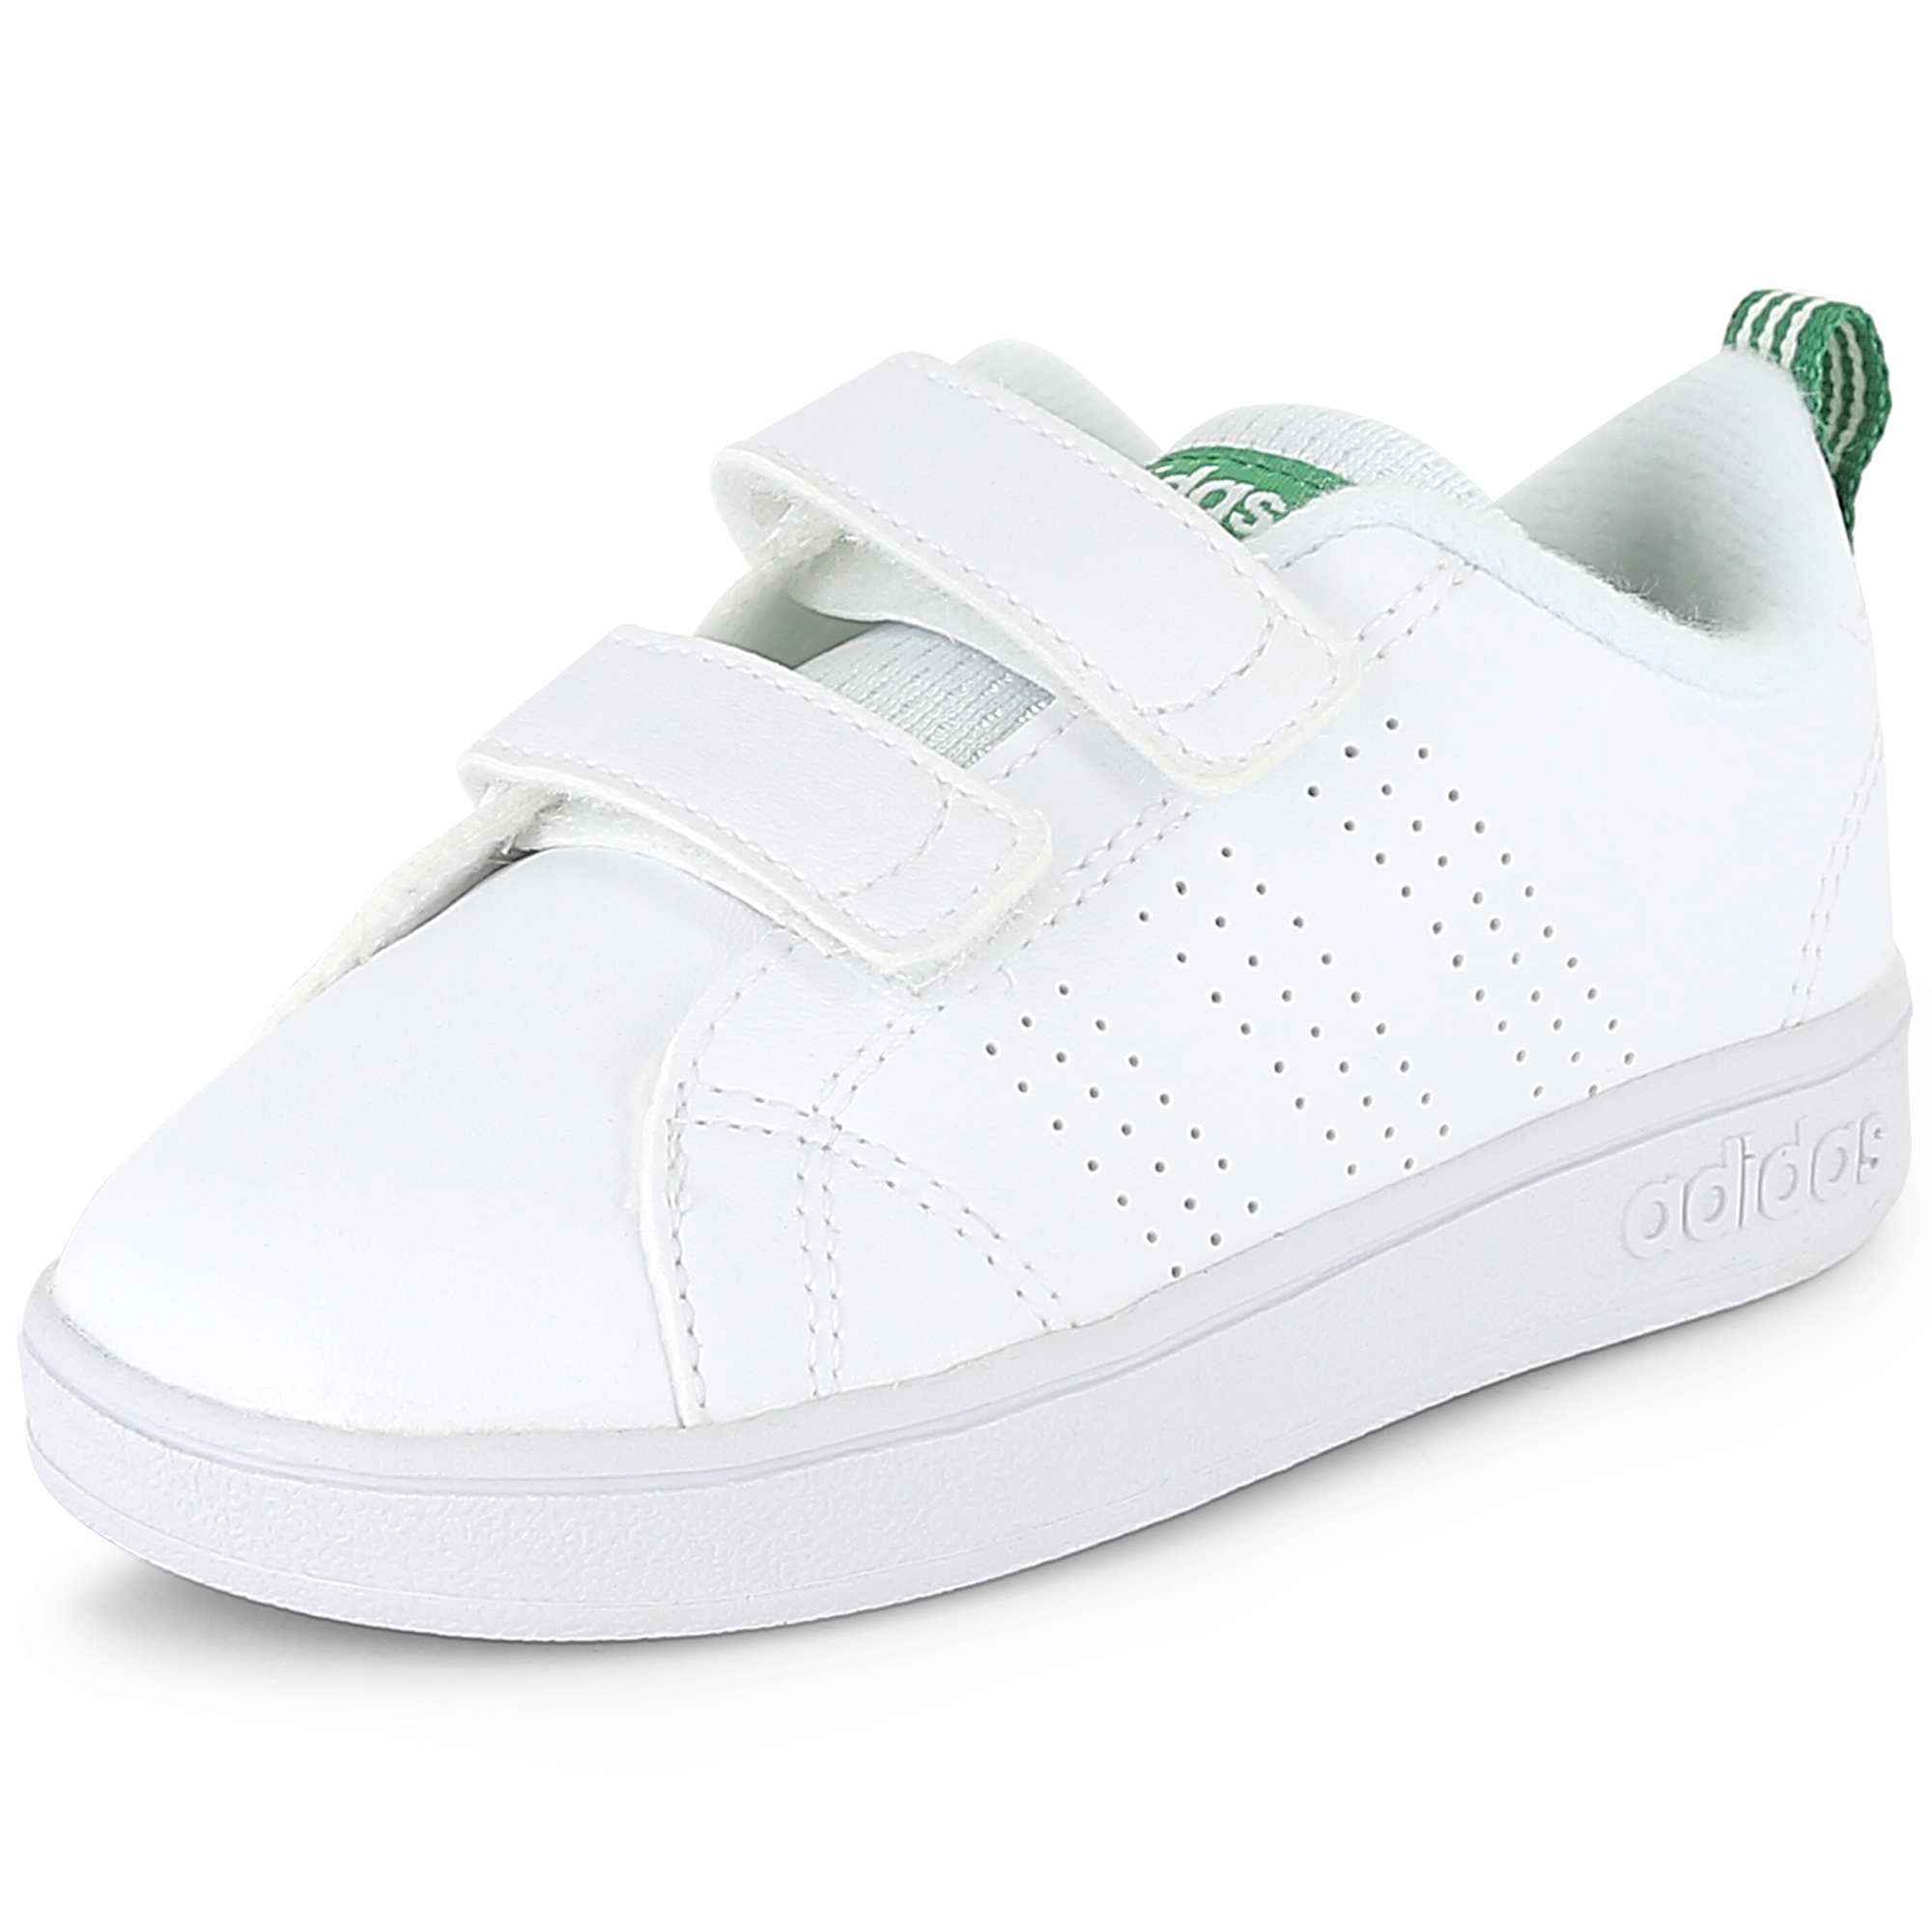 6875bbc1a Ténis 'Adidas VS Advantage Clean' blanco Menino 3-12 anos. Loading zoom